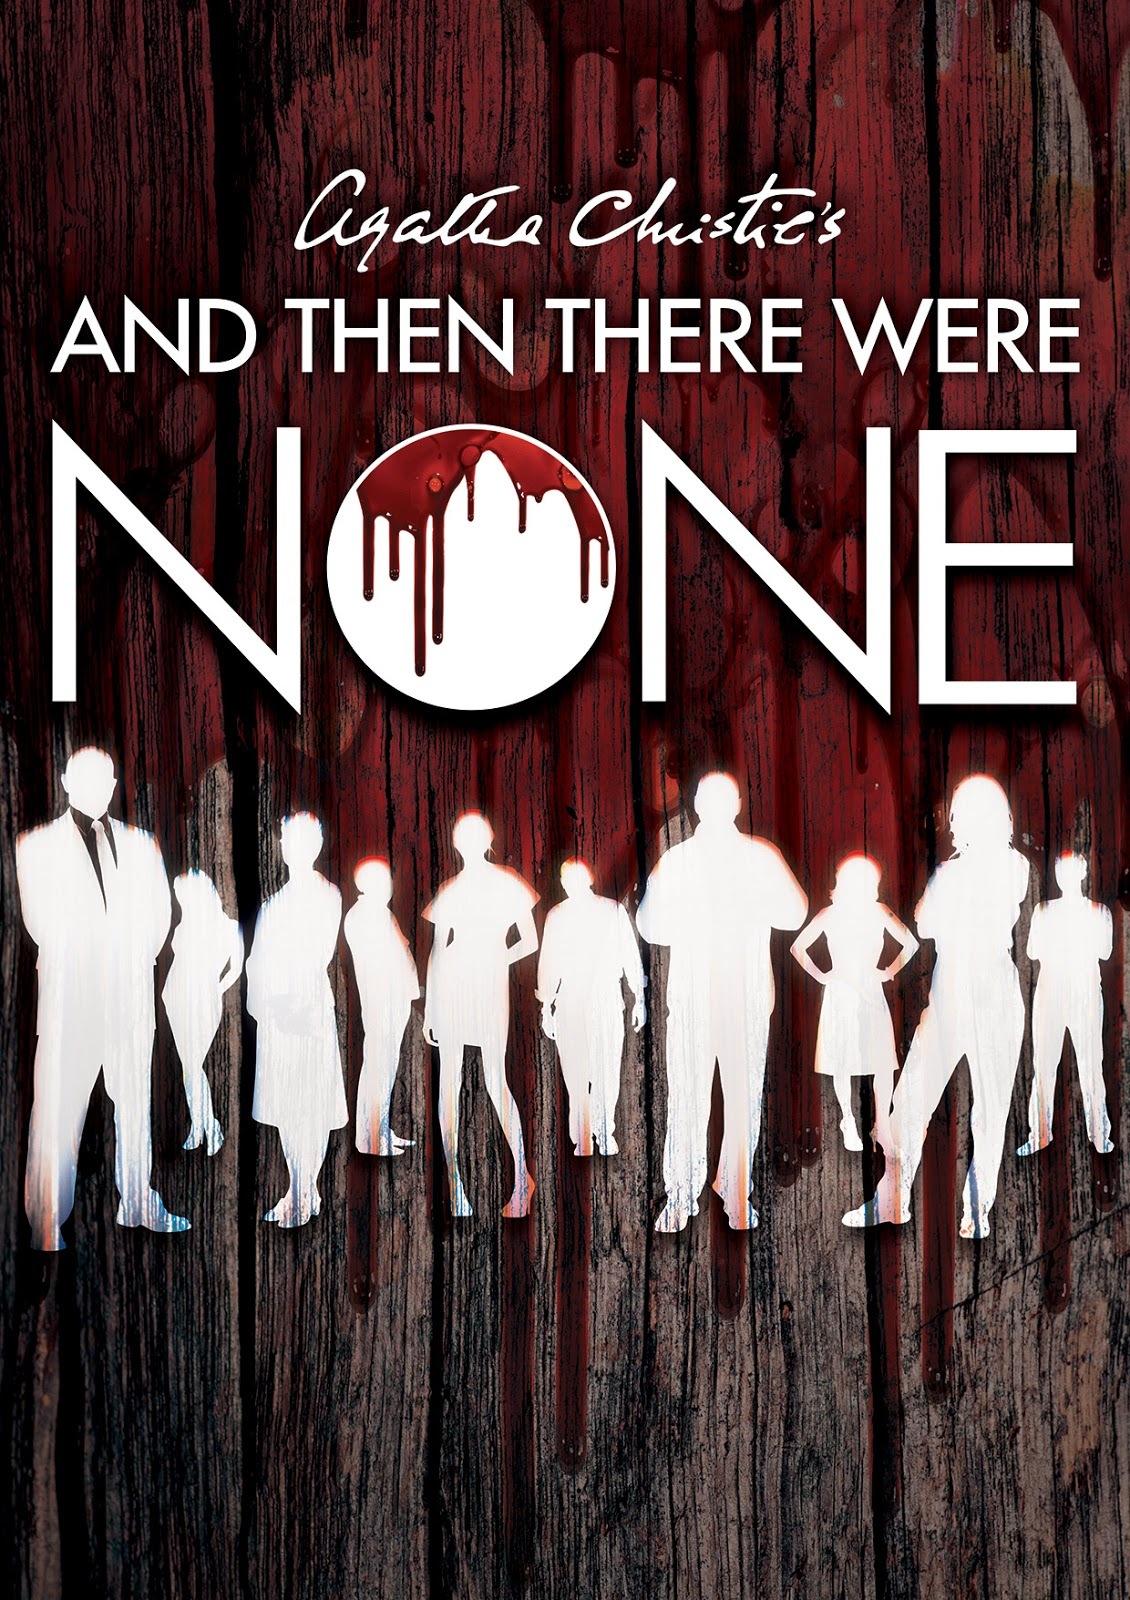 And then there were None 3 7cK8GV.tmp